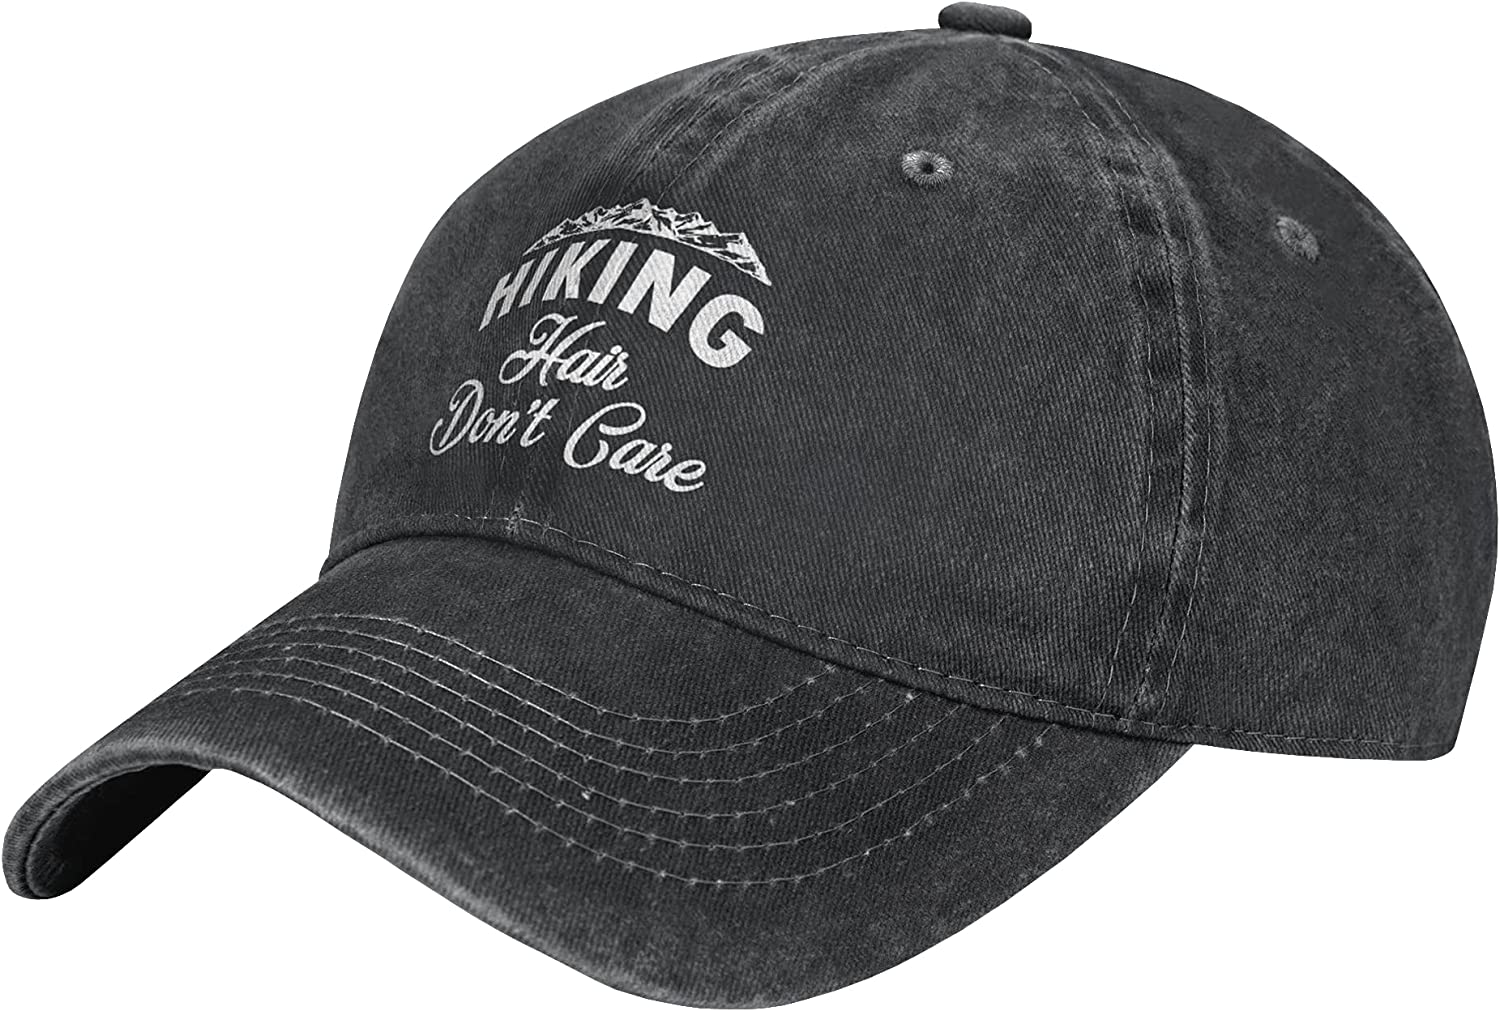 Wisedeal Women's Mountains Hiking Hair Don't Care Hat Adjustable Vintage Distressed Classic Washed Denim Dad Baseball Cap